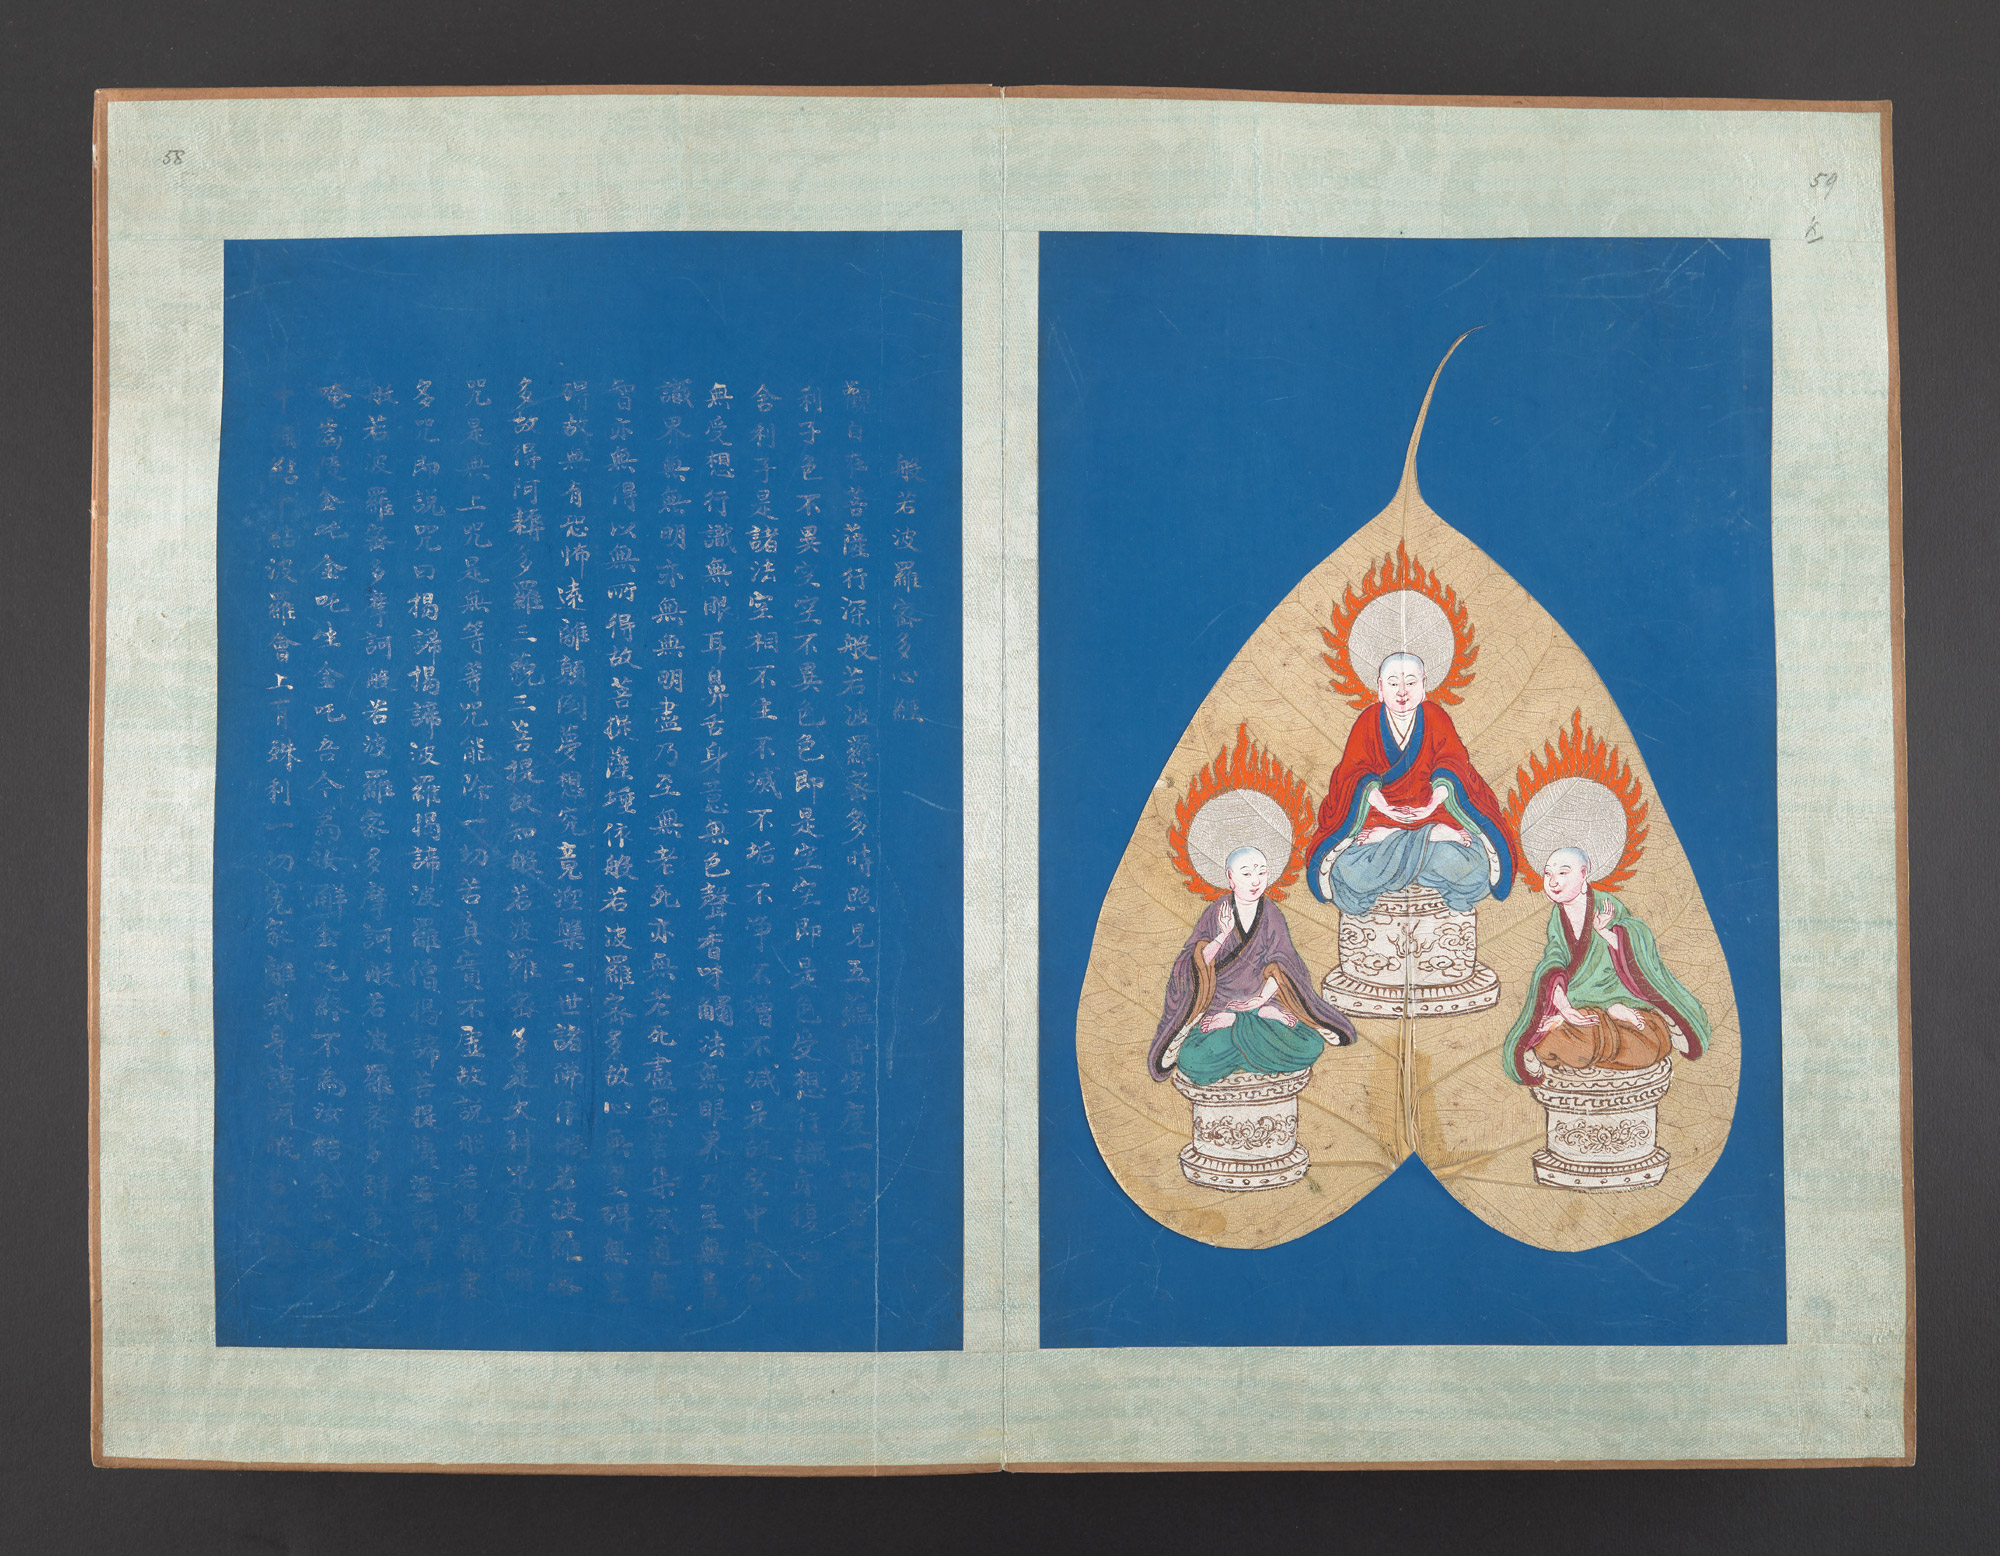 Sutras with illustrations on fig leaves, Add MS 11746, f001r